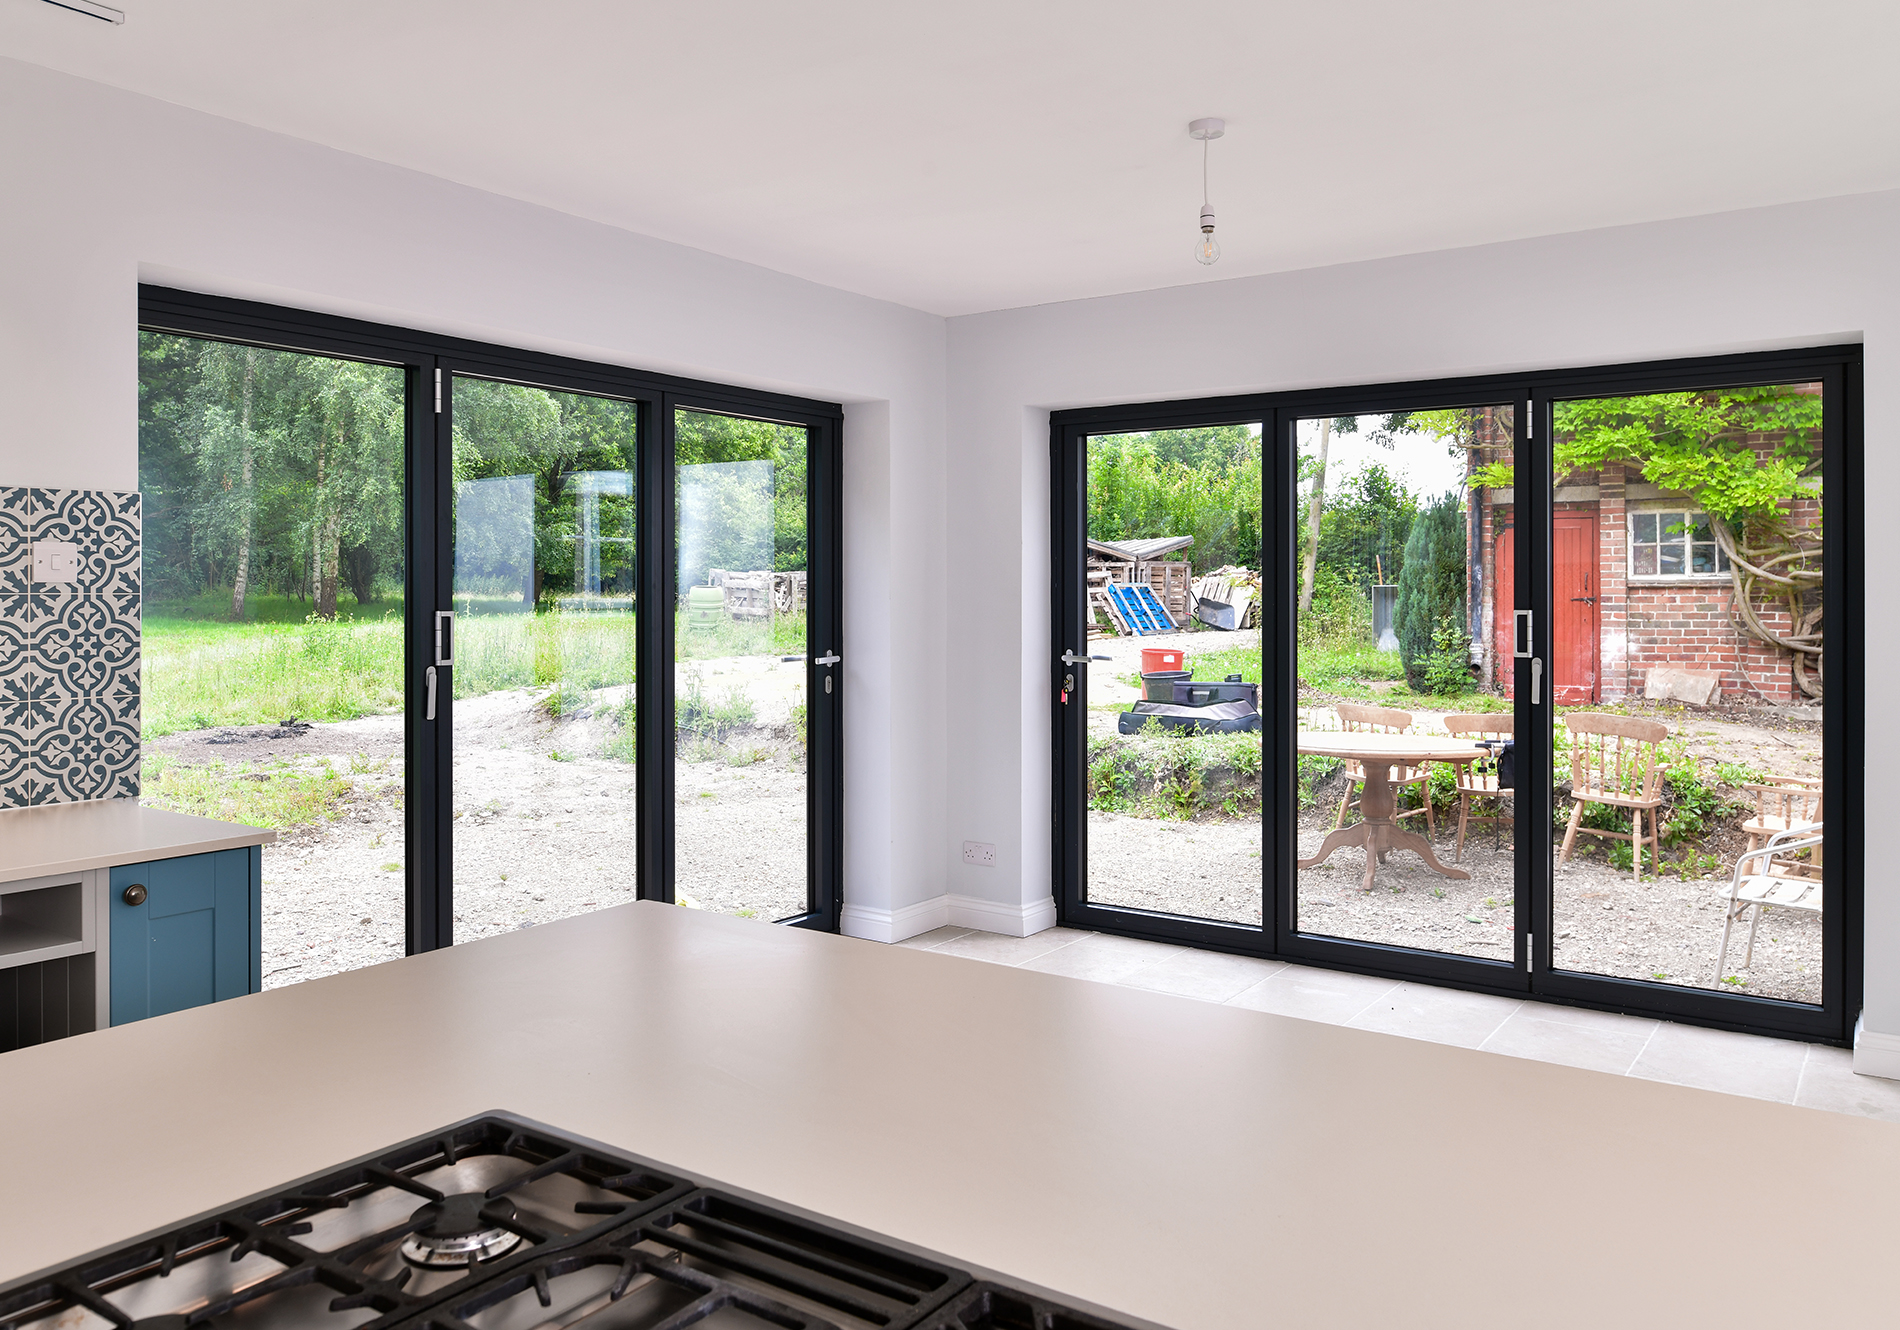 views onto the garden through 2 sets of FD85 bifold doors